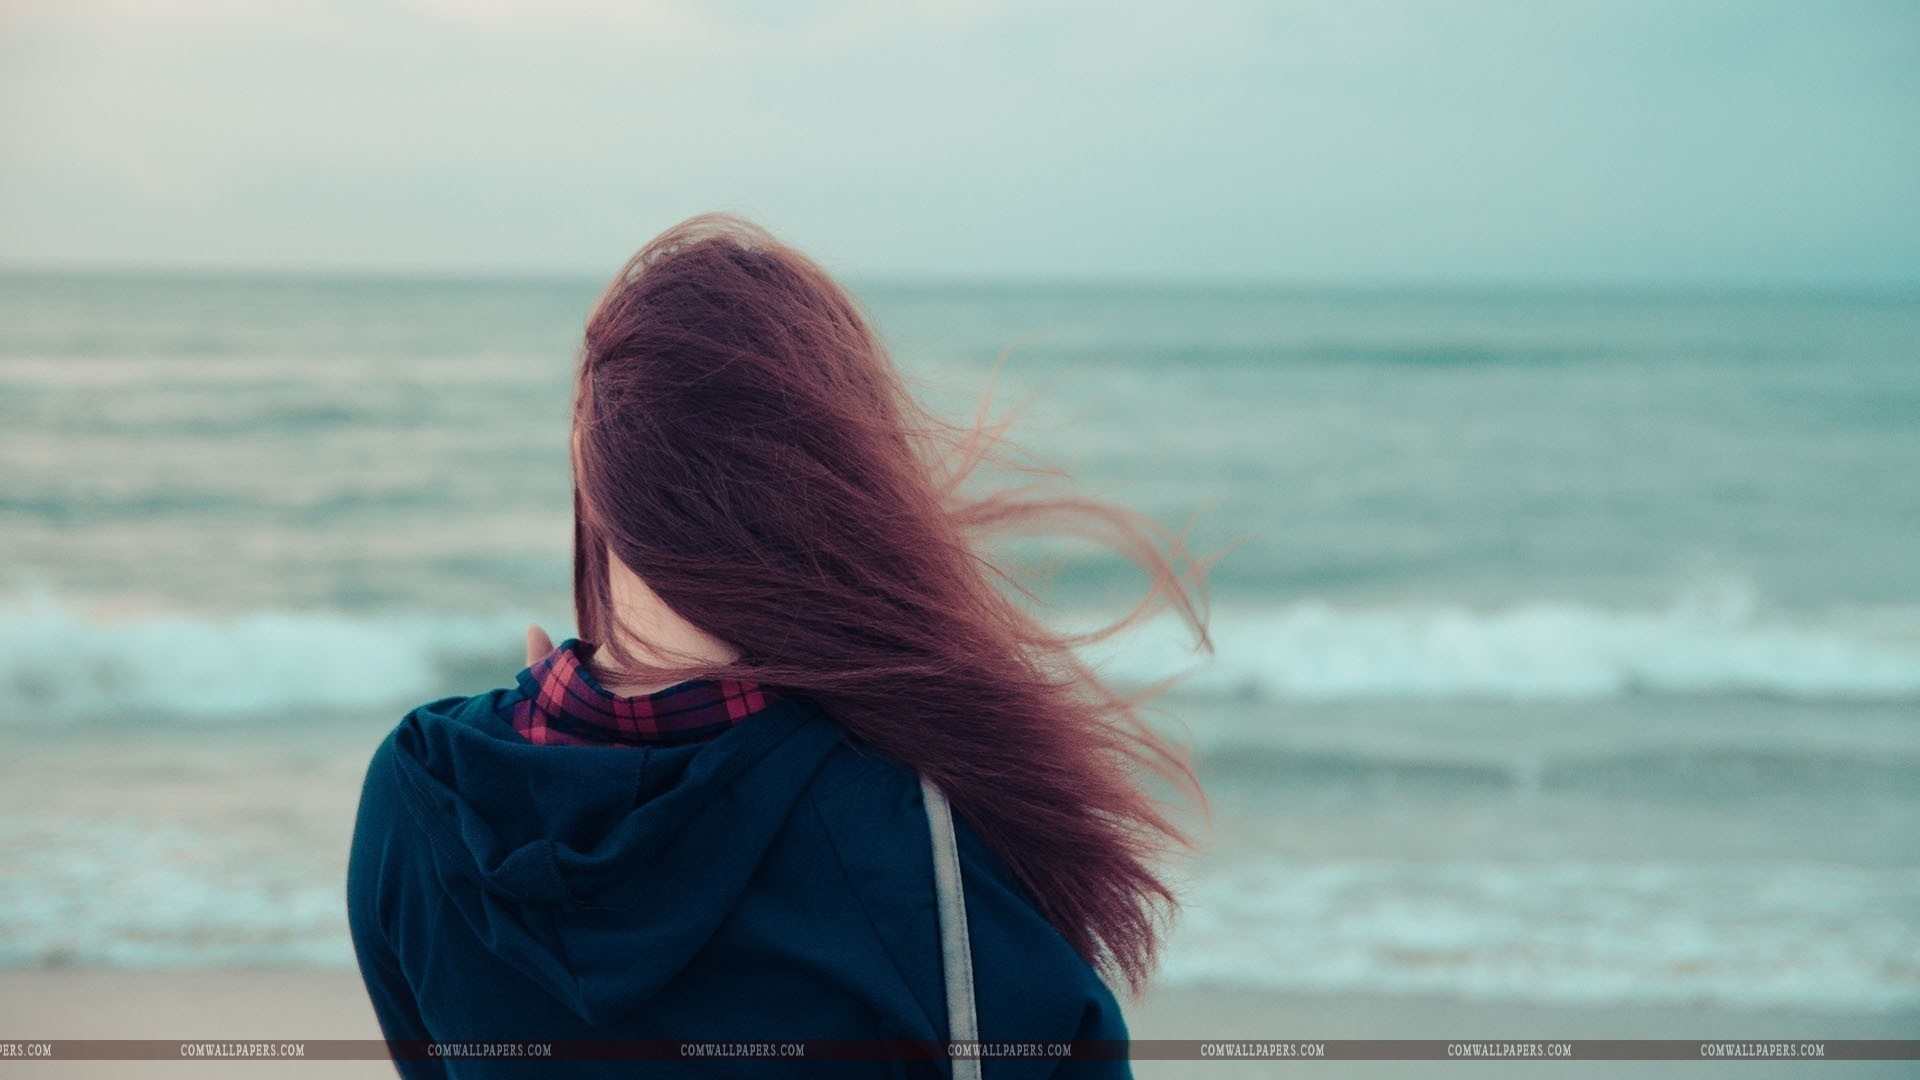 Sad Images Alone Girl Wallpapers, Pictures Sad Images - Facebook Wallpaper For Girl - HD Wallpaper